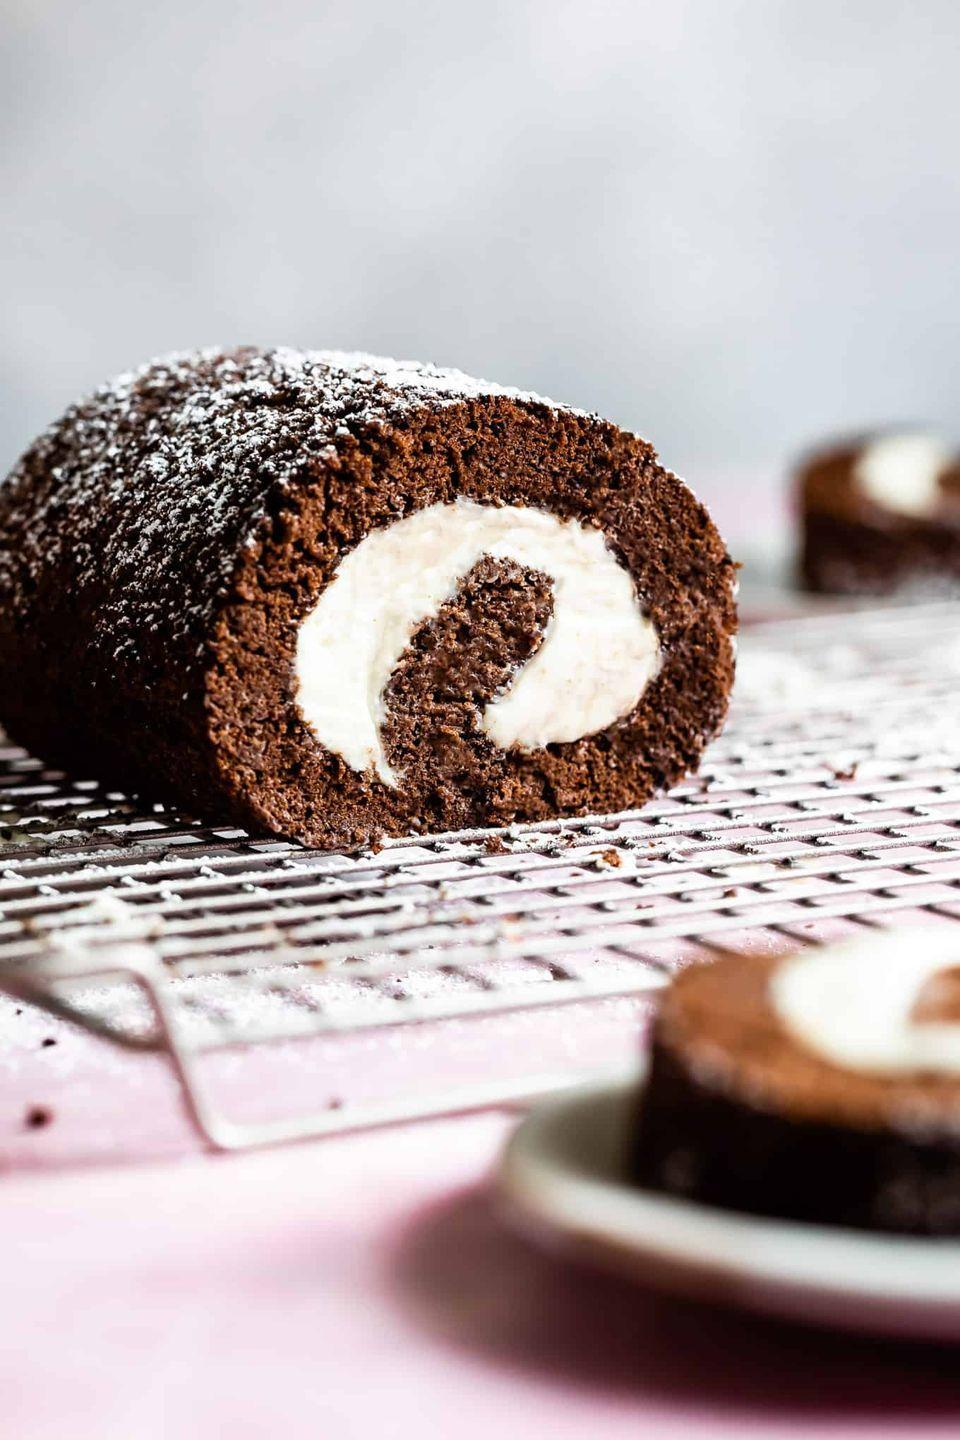 """<p>A fabulous winter dessert that's surprisingly easy to make, but perfect for a crowd.</p><p><a href=""""https://www.snixykitchen.com/chocolate-gluten-free-swiss-roll-cake/"""" rel=""""nofollow noopener"""" target=""""_blank"""" data-ylk=""""slk:Get the recipe"""" class=""""link rapid-noclick-resp"""">Get the recipe</a>.</p>"""